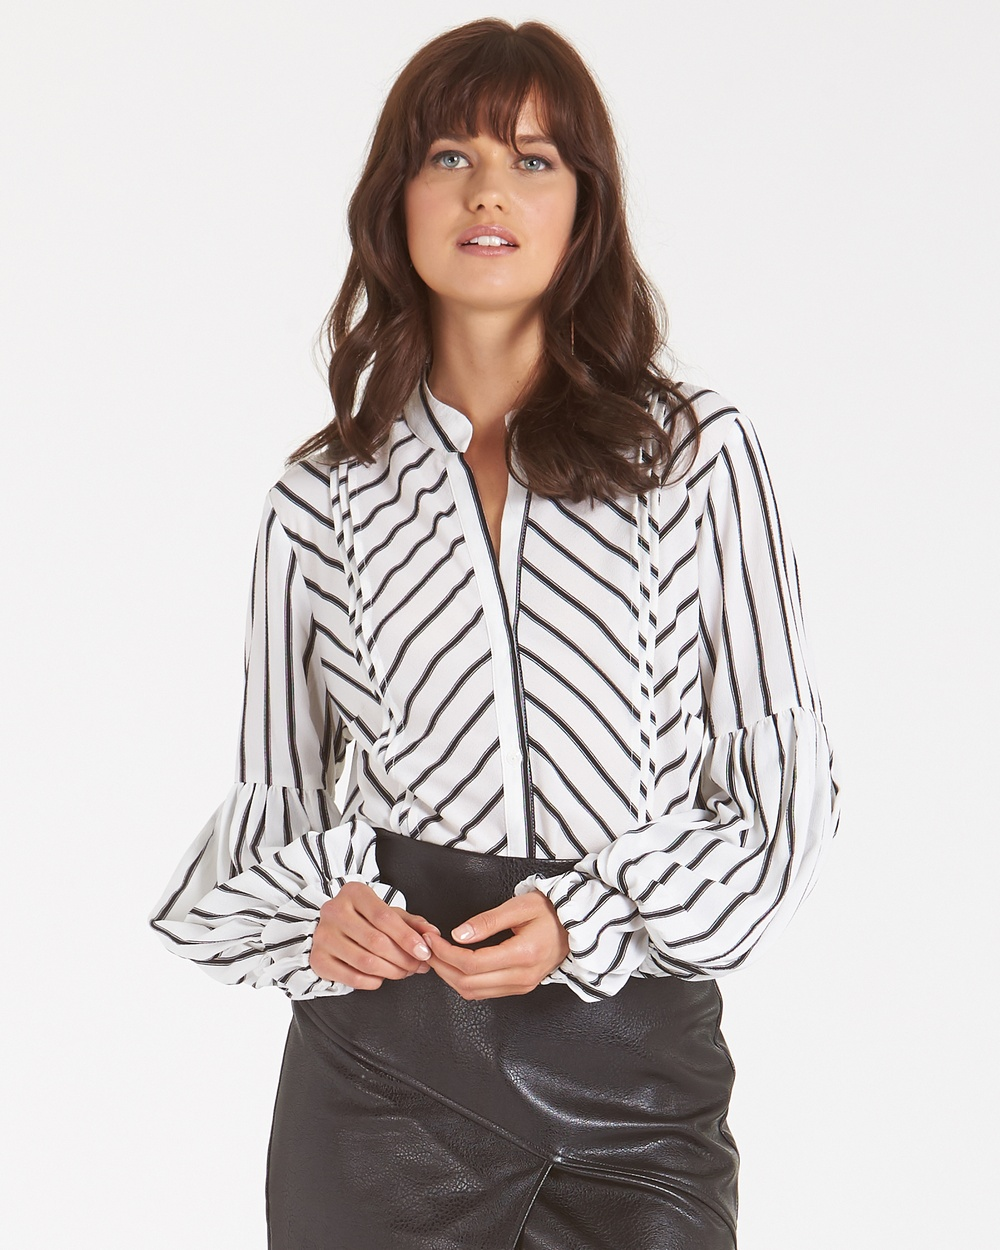 Amelius Allegra Stripe Blouse Tops WHT/BLK Allegra Stripe Blouse